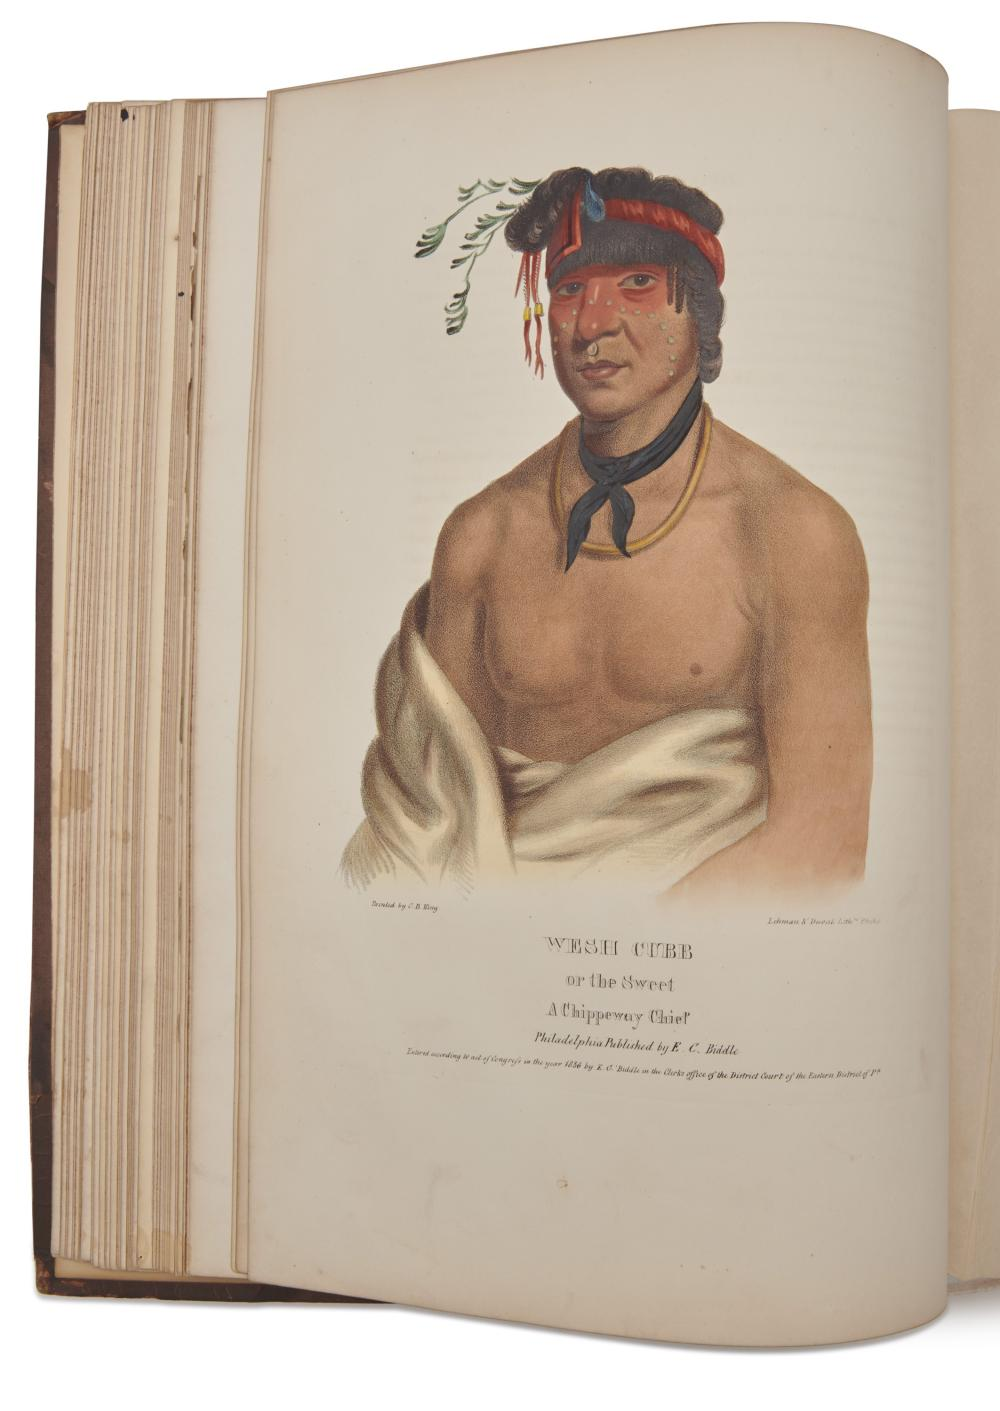 McKenney, Thomas L. (1785-1859) and James Hall (1793-1868). History of the Indian Tribes of North America. Philadelphia: Edward C. Biddle (vol. I); Daniel Rice and James G. Clark (vols. II and III); 1836-1842-1844.